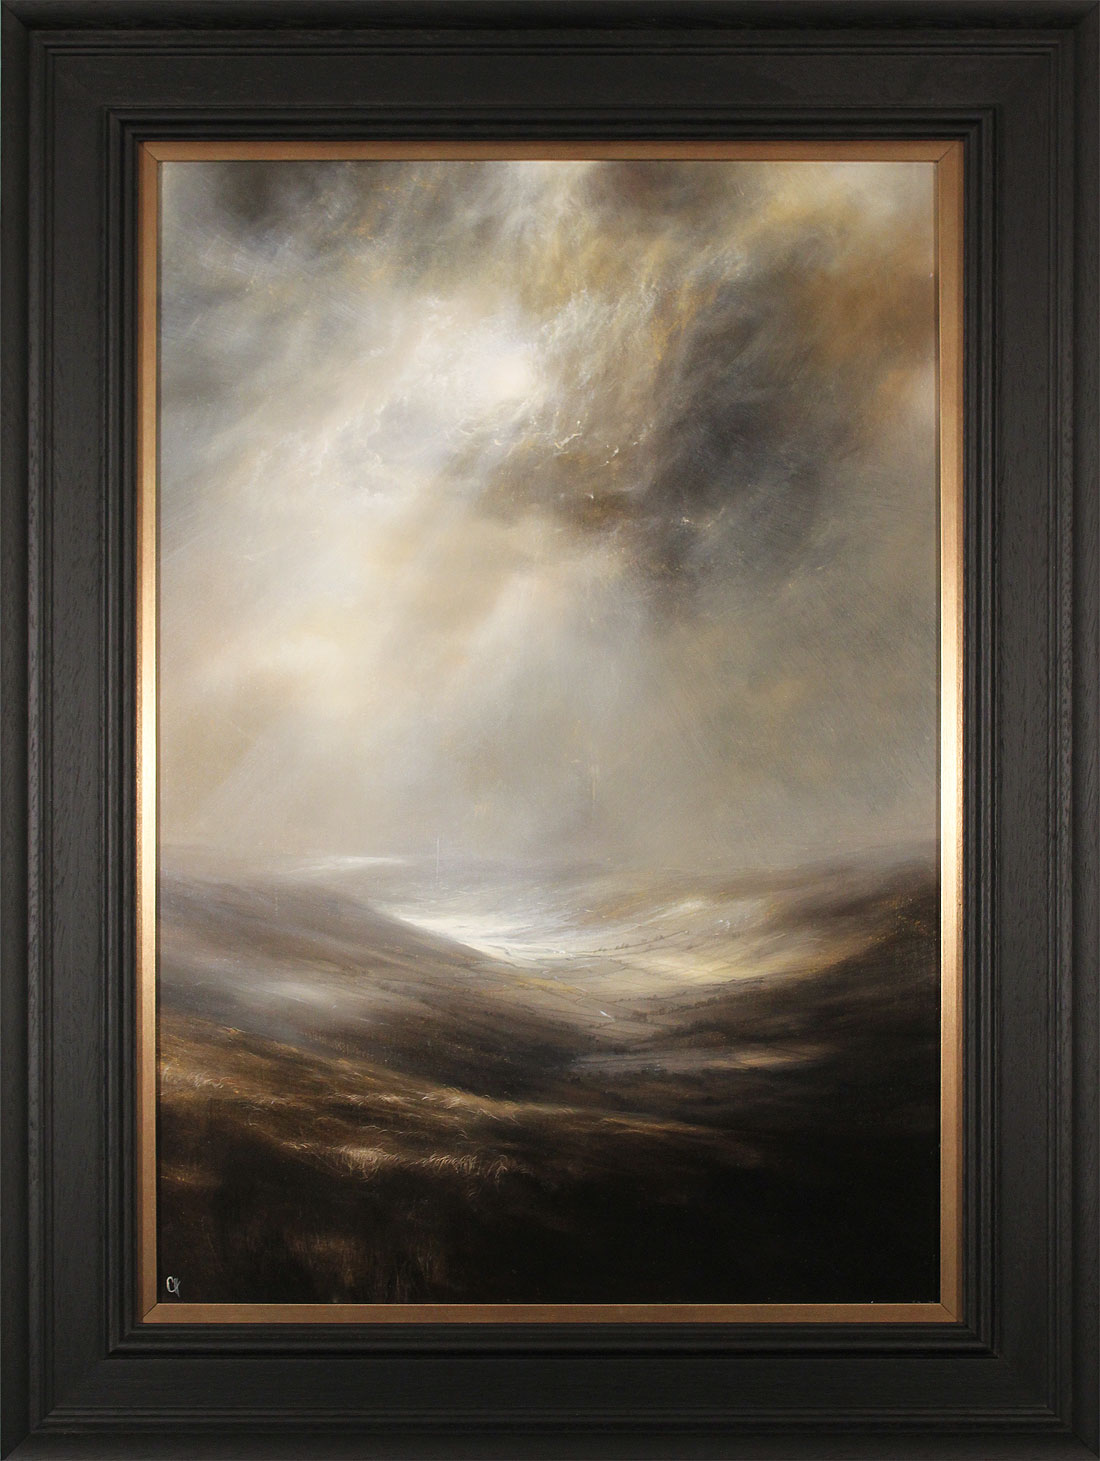 Clare Haley, Original oil painting on panel, North Yorkshire in Umber Tones, click to enlarge